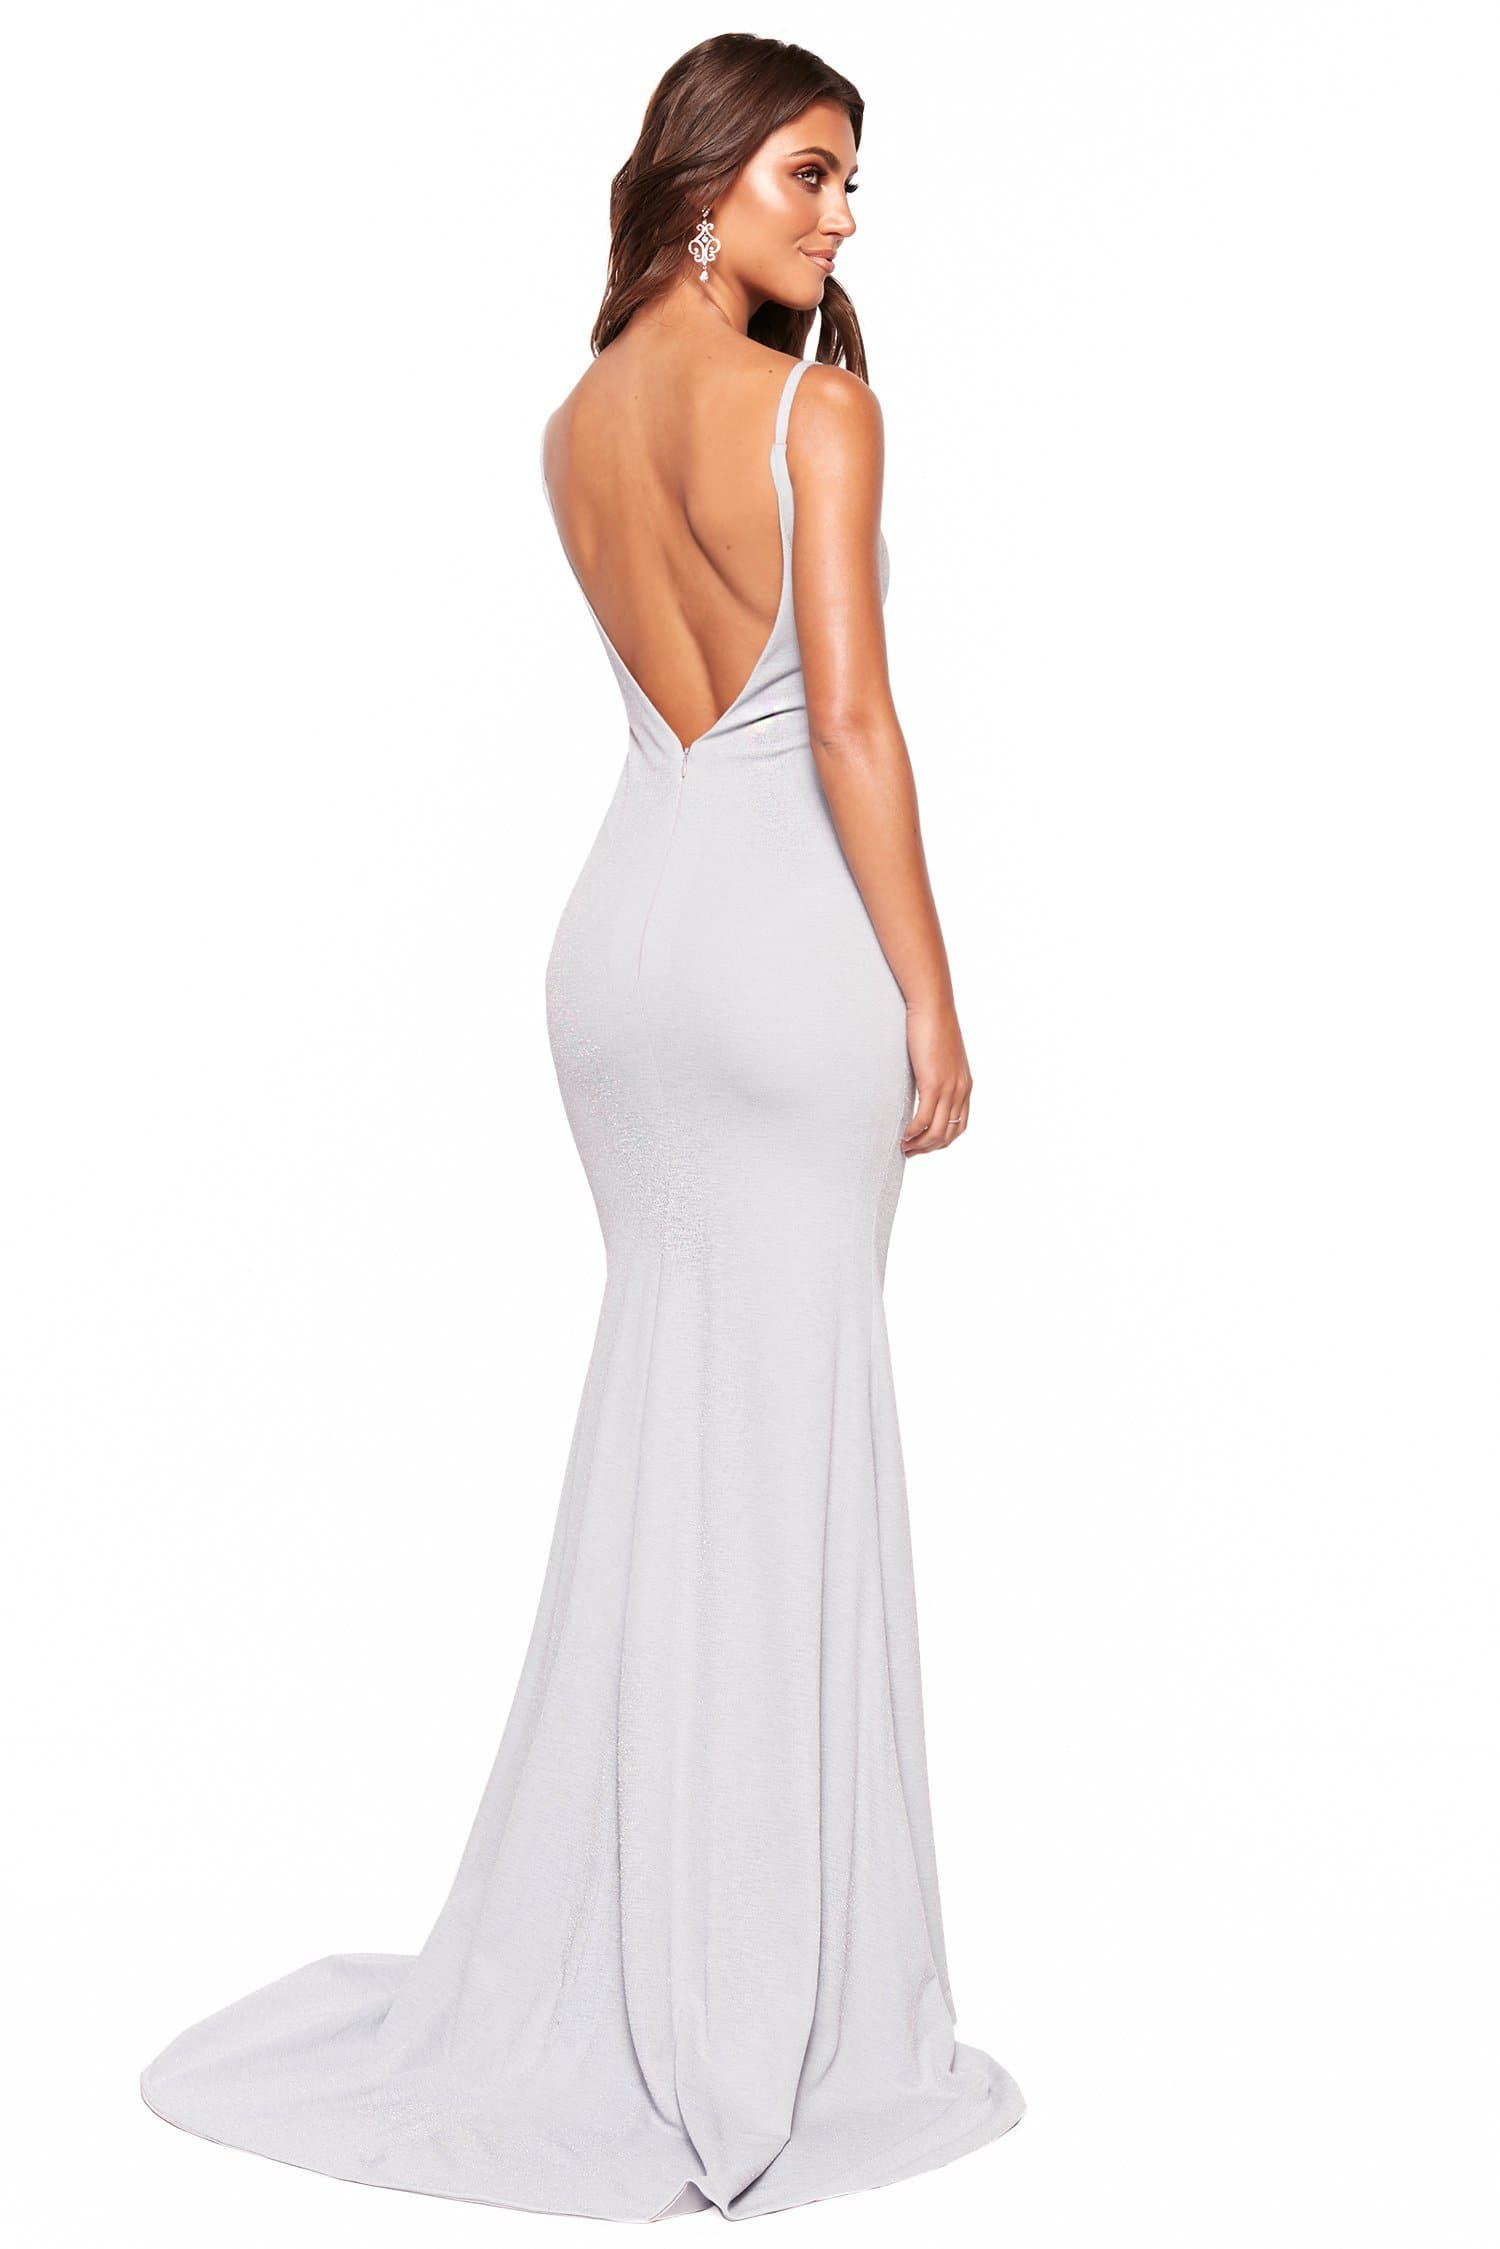 A&N Luxe Pia - Sky Blue Shimmering Mermaid V-Neck Backless Gown